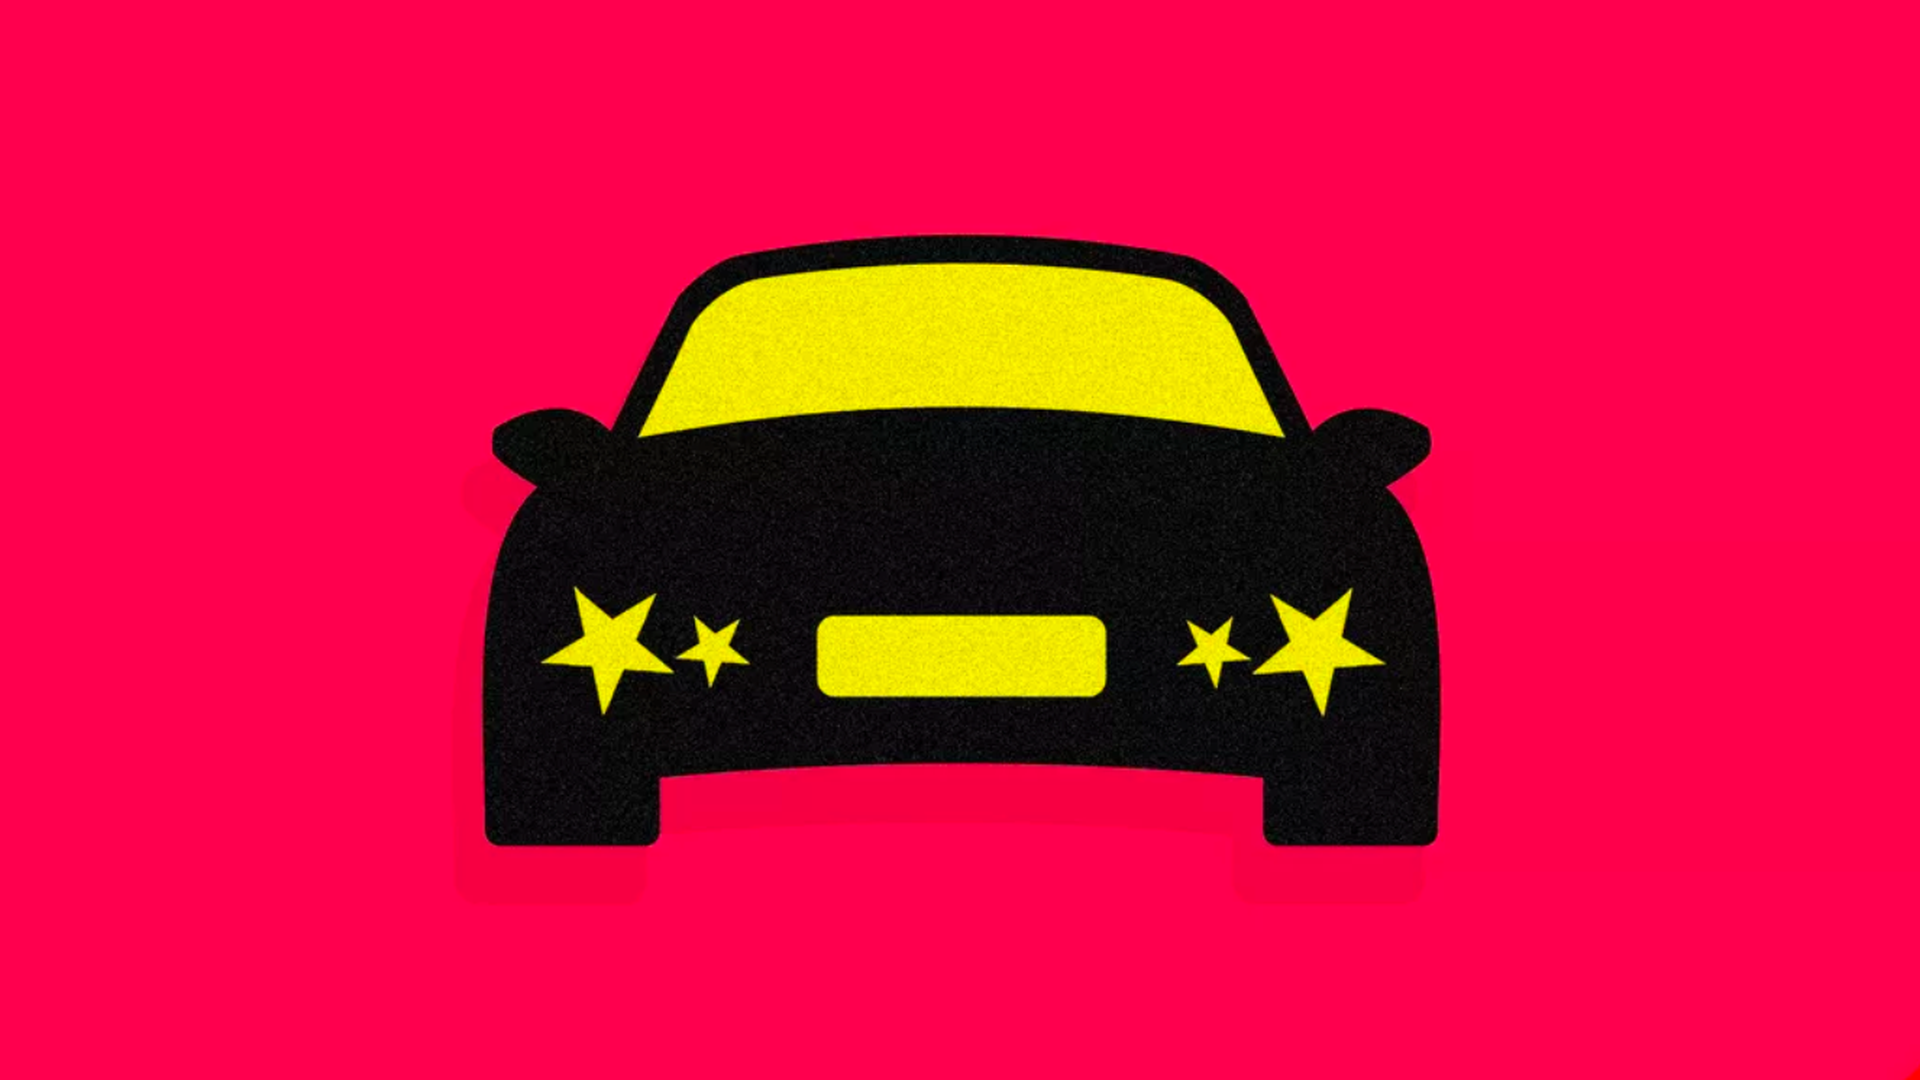 This illustration shows a car with headlines in the shape of stars.